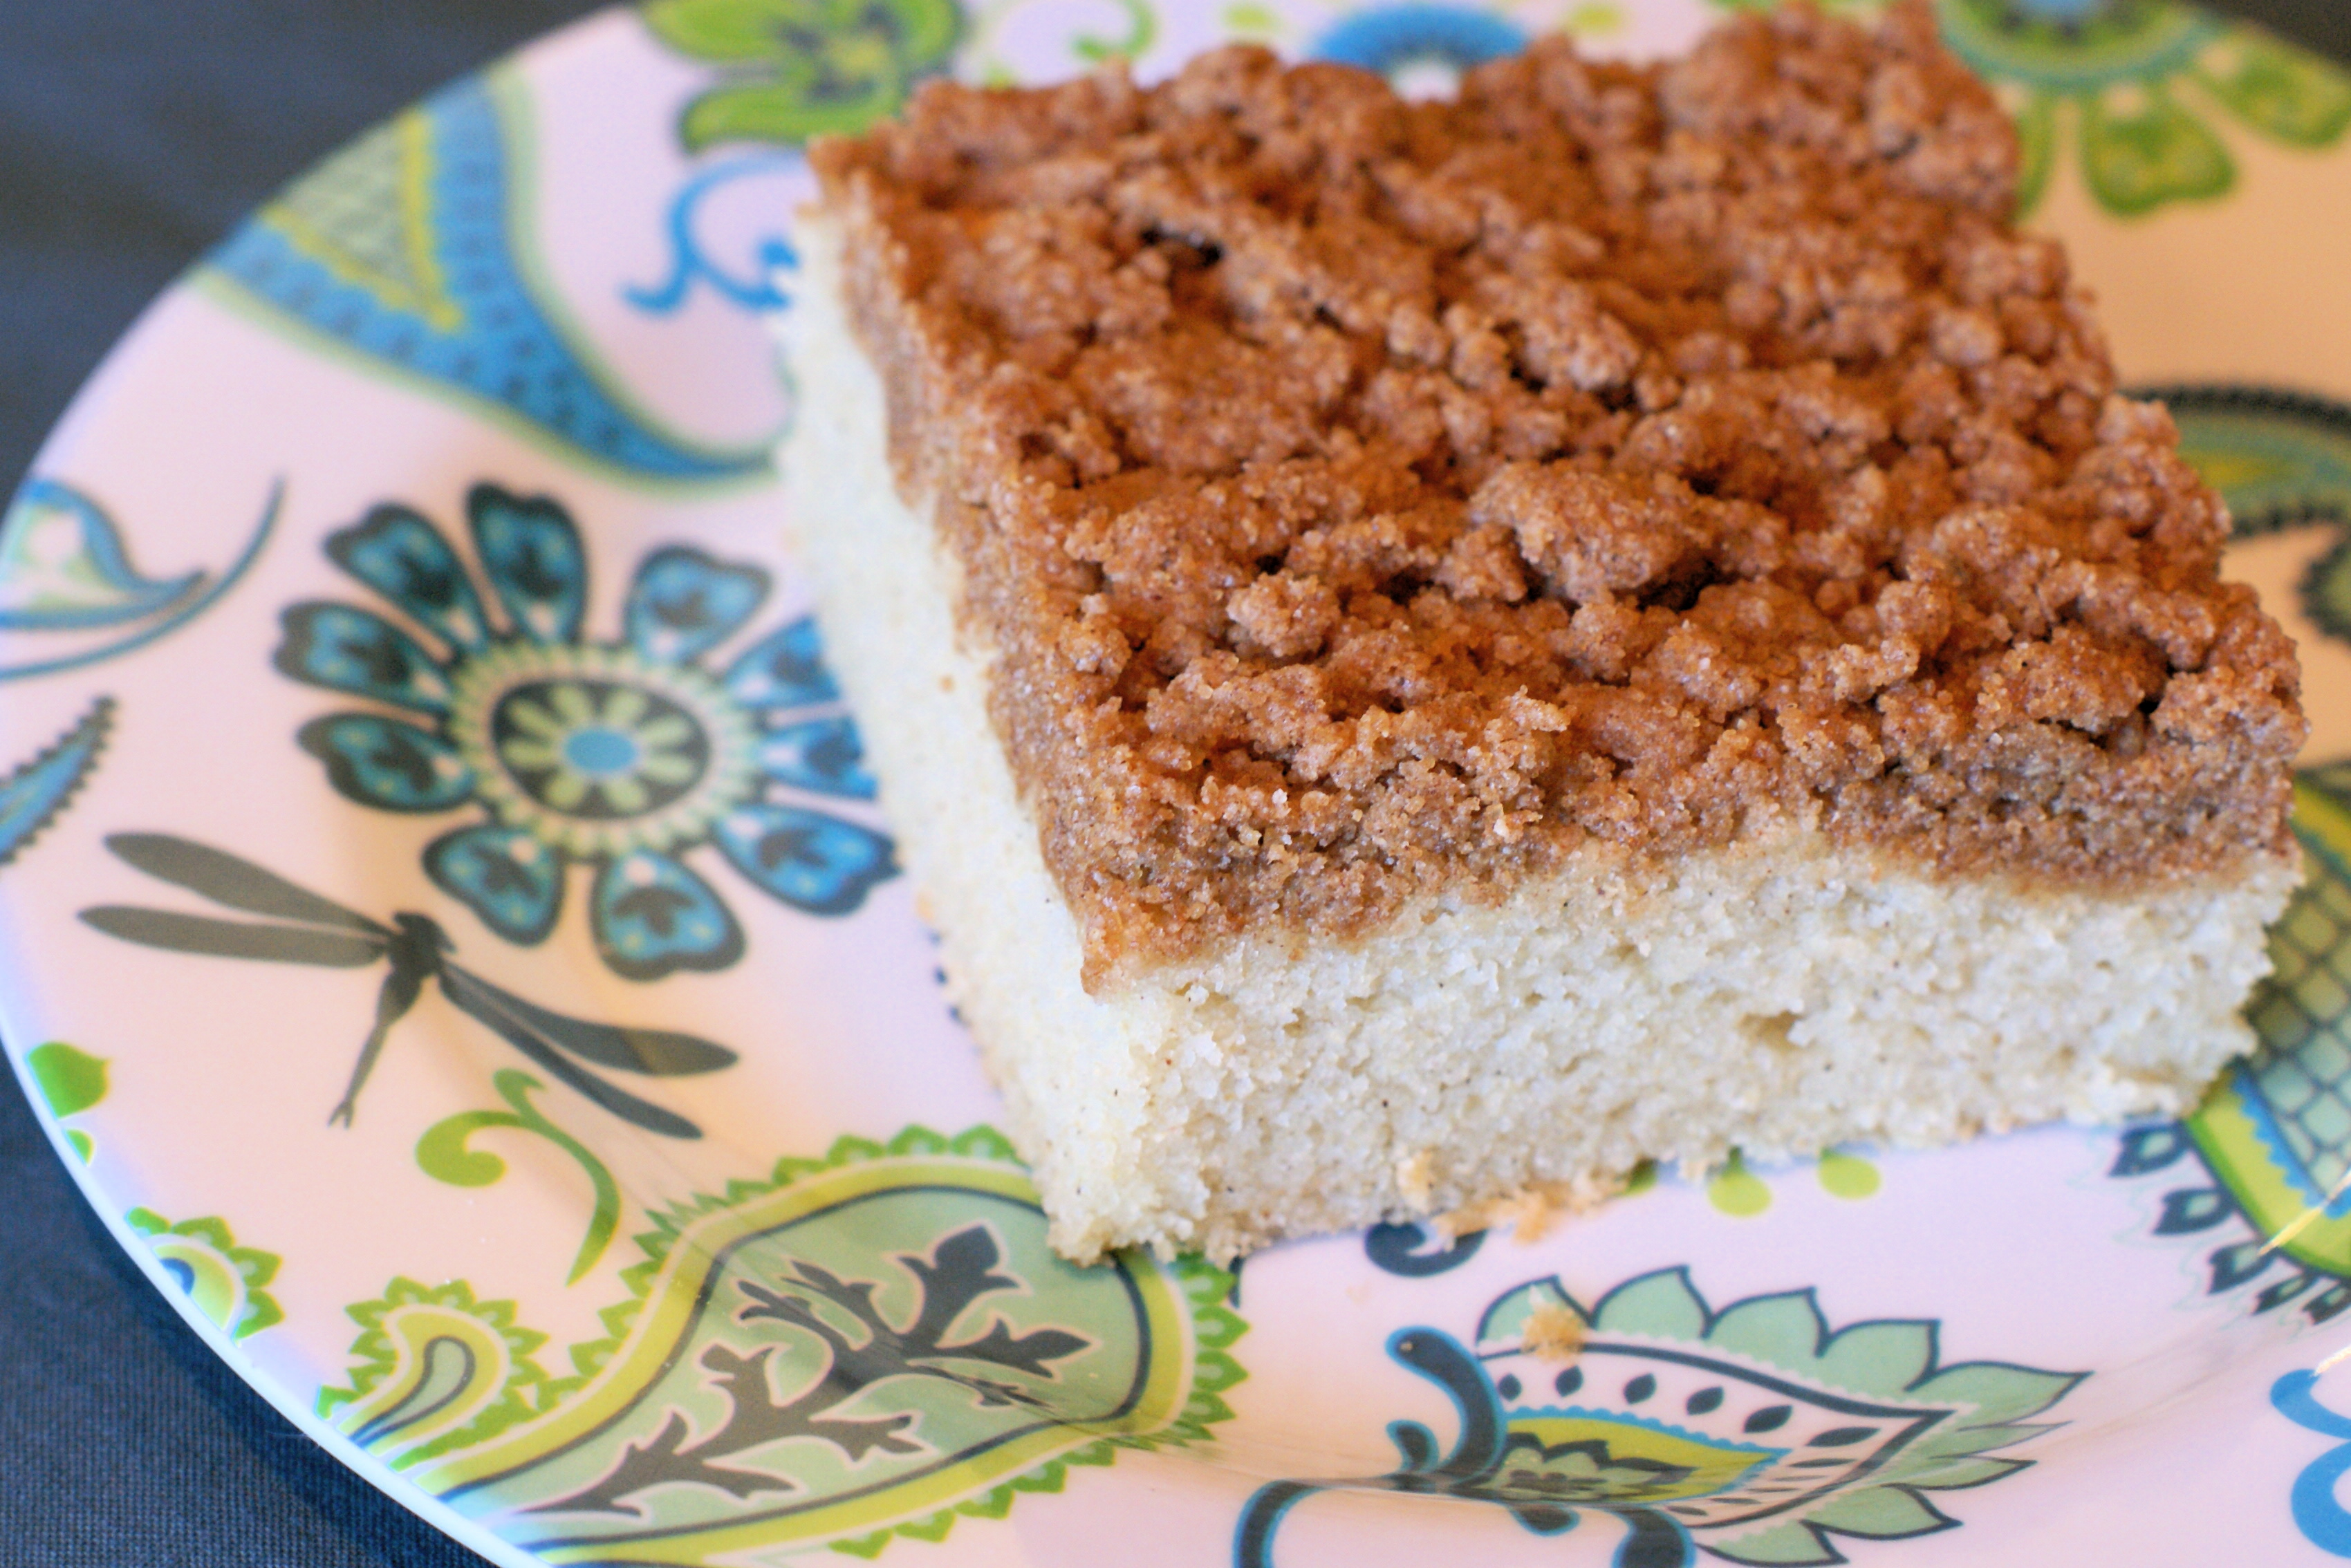 Gluten Free Vegan Coffee Cake